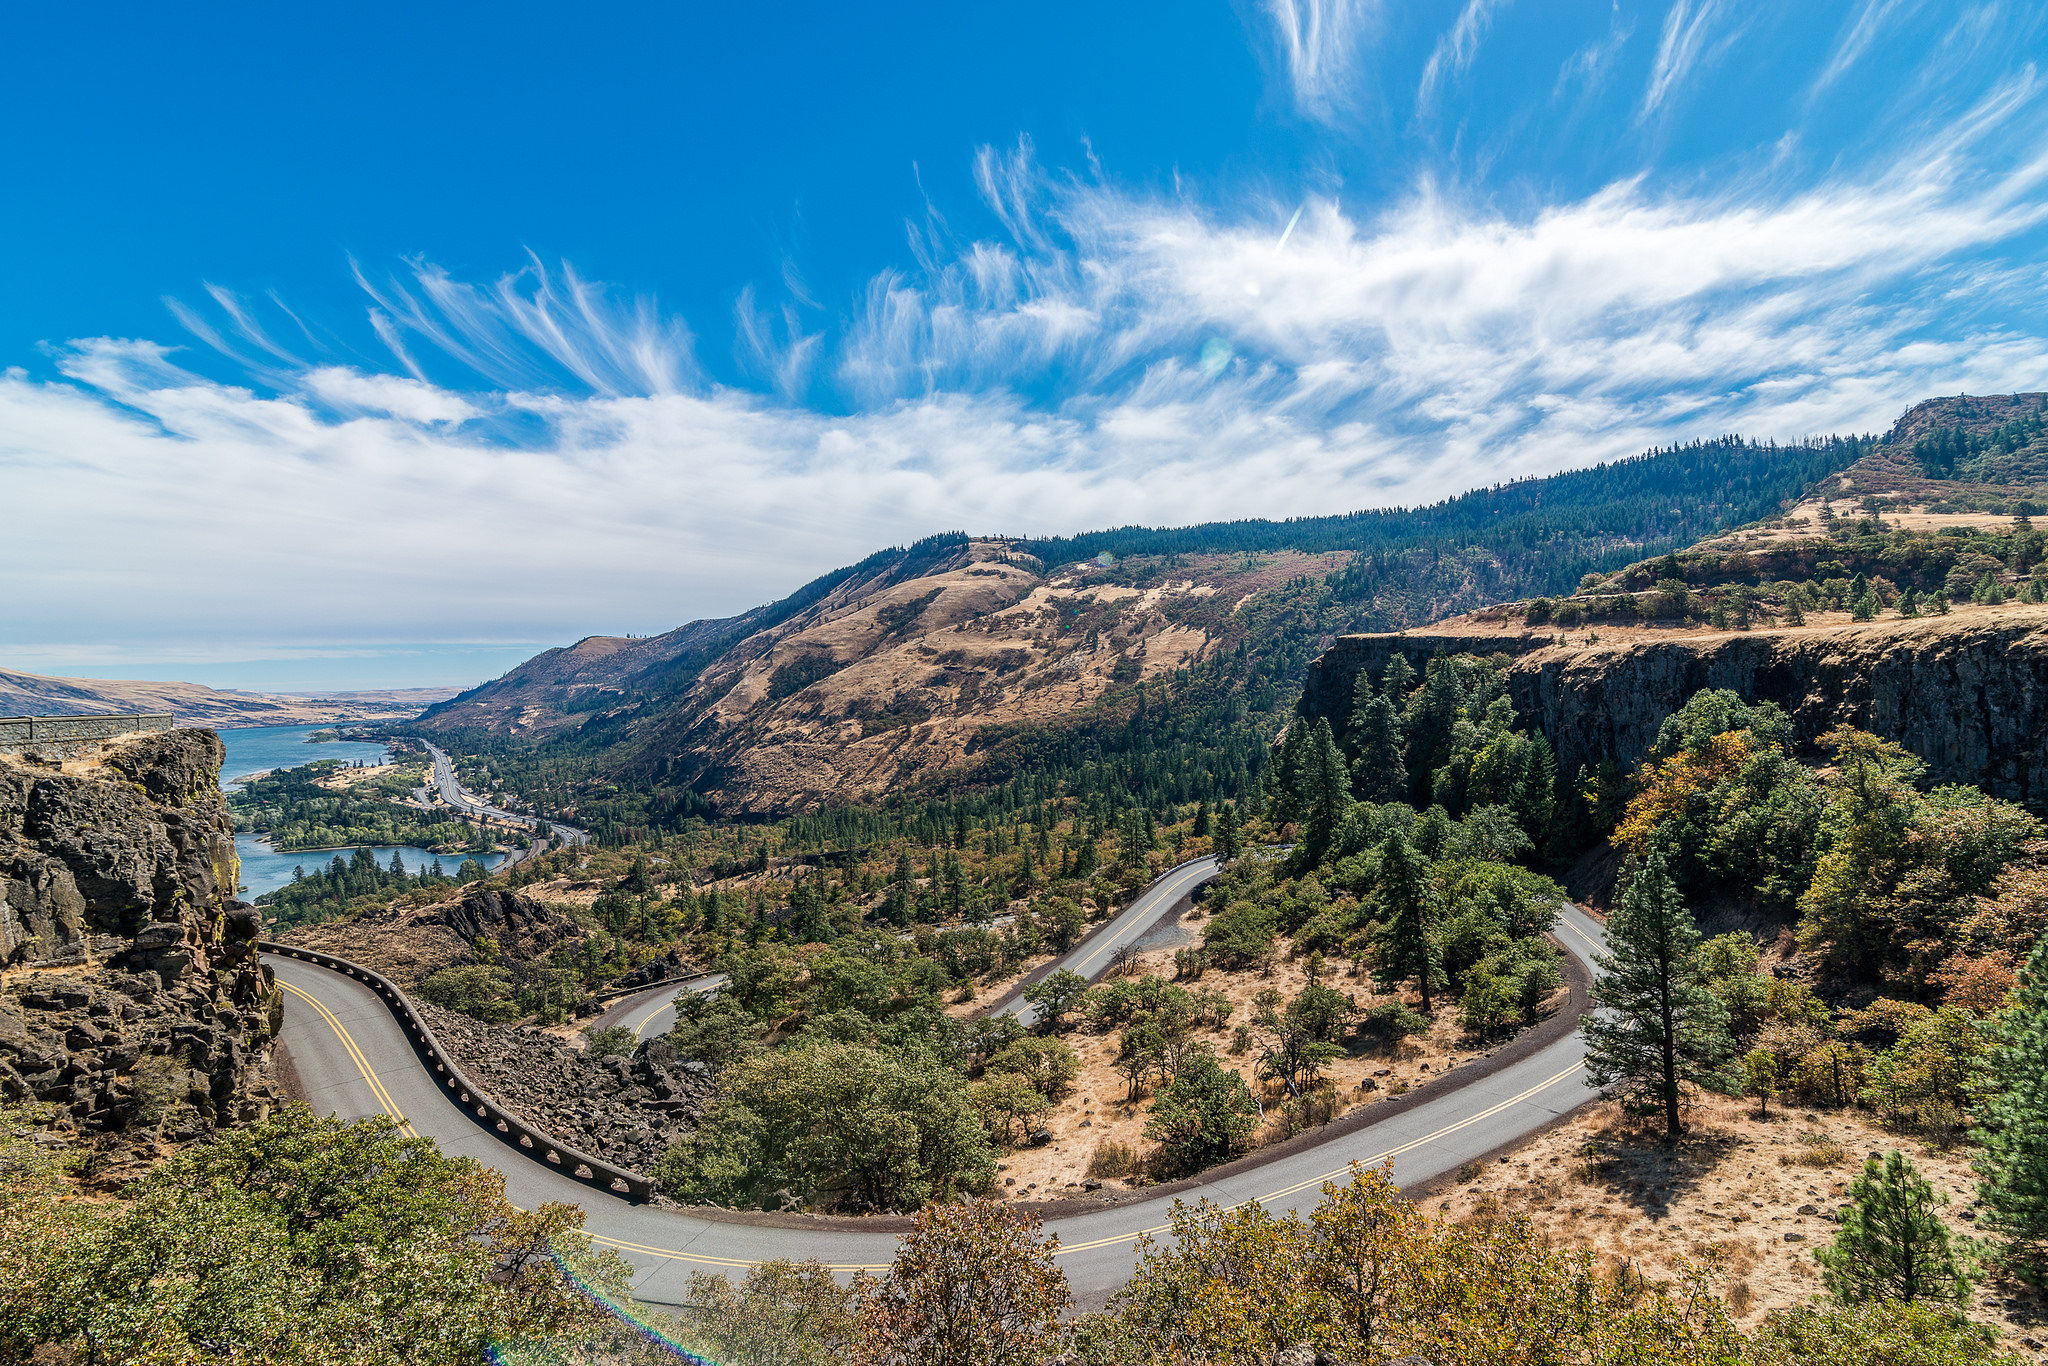 Take A Drive On These 10 Scenic Roads And Byways In Oregon